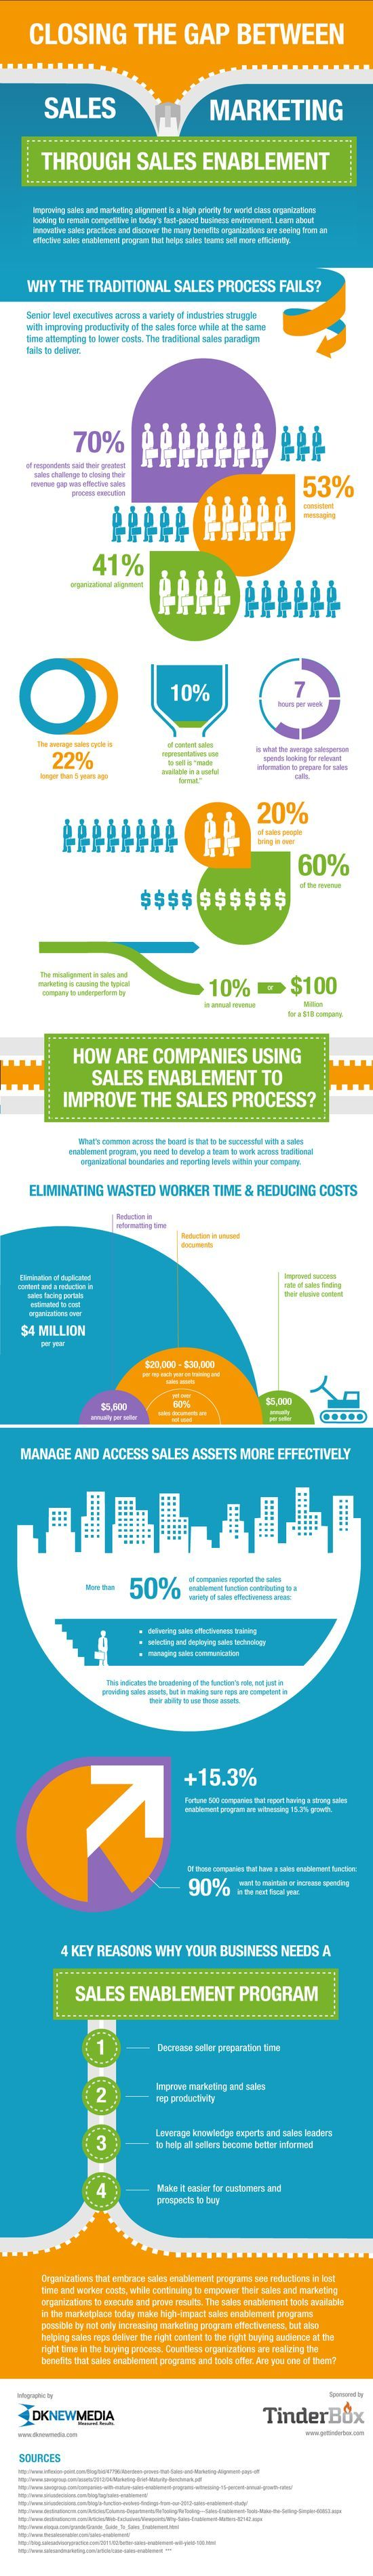 Four Reasons Why Organizations Need a Sales Enablement Program | Damarque